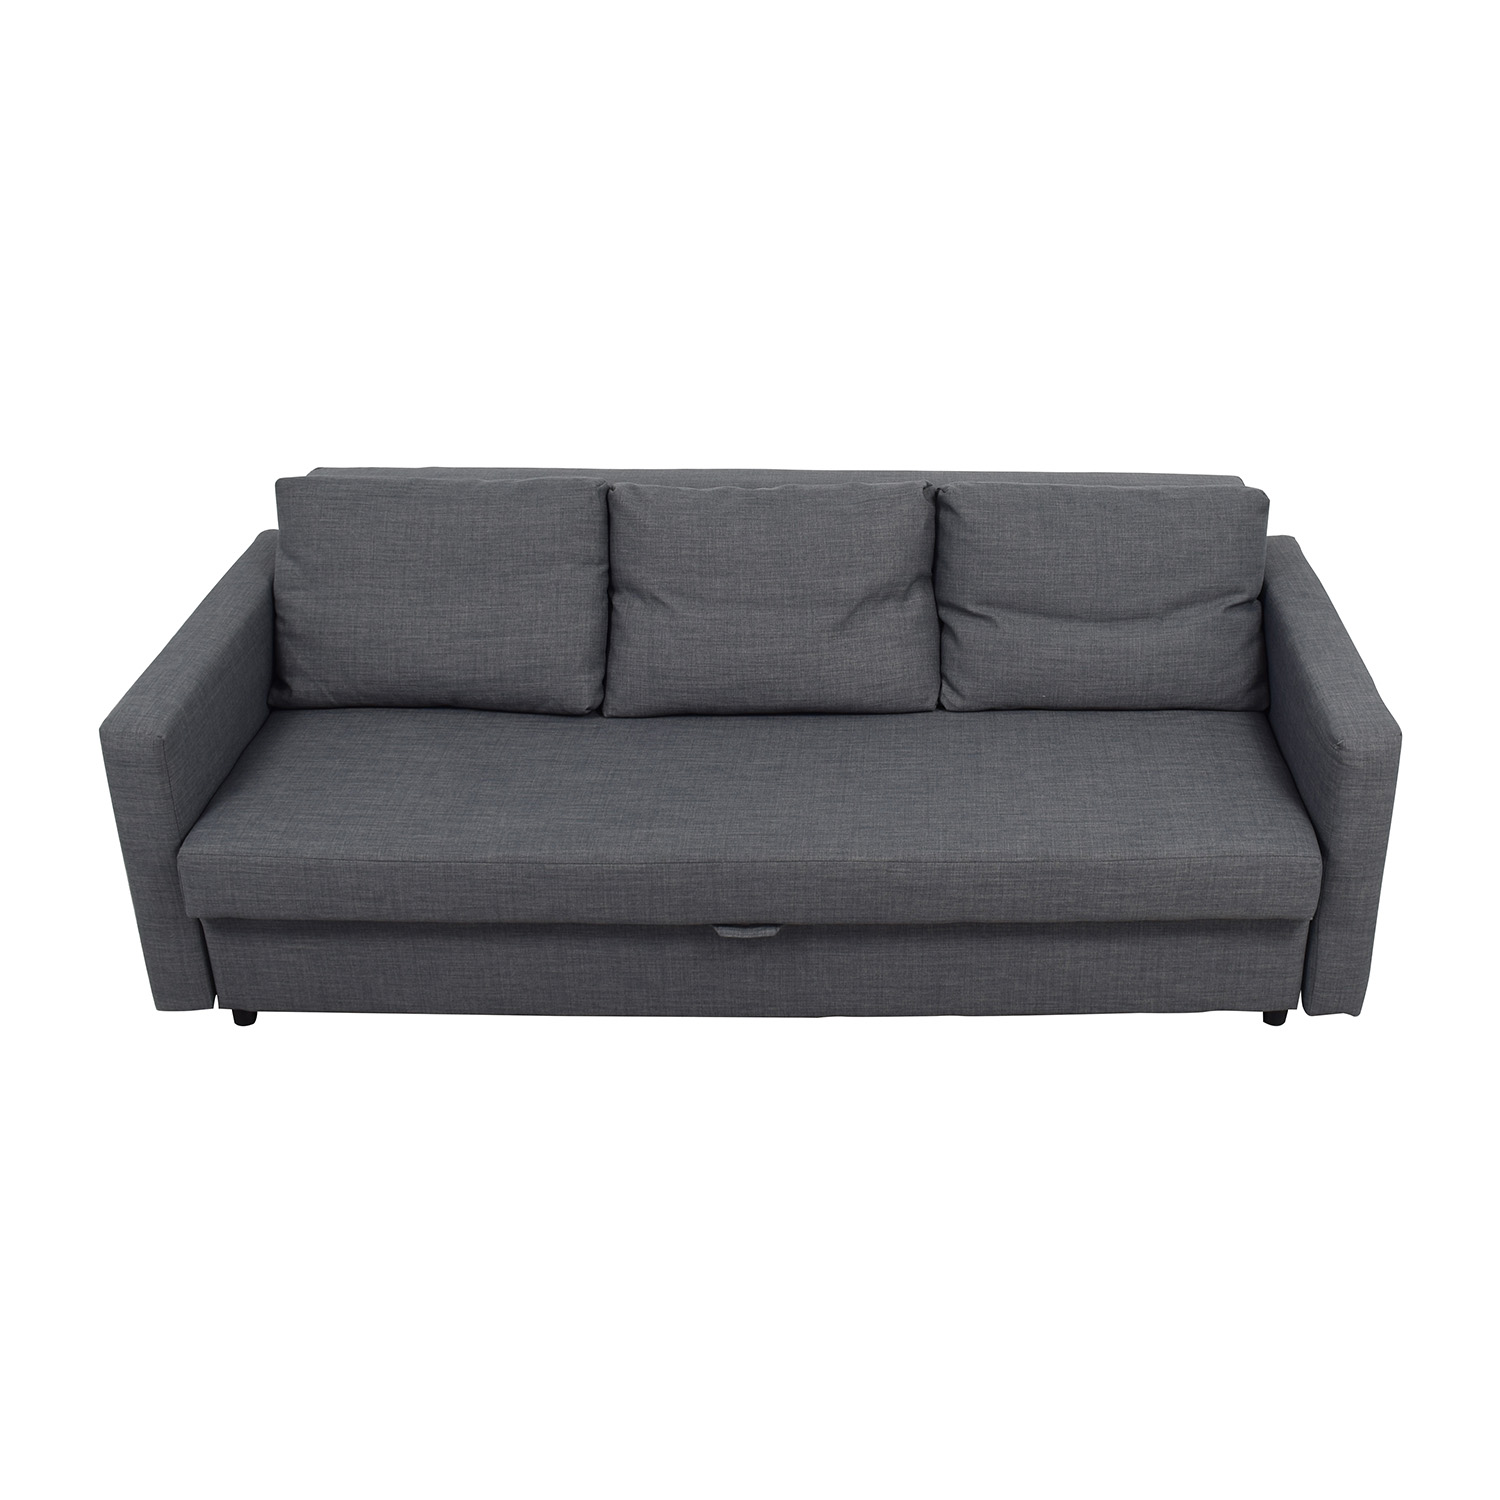 sofa la z with walmart double home boy rug ikea mattress futon sleeper loveseat leather idea small recliner cozy furniture for